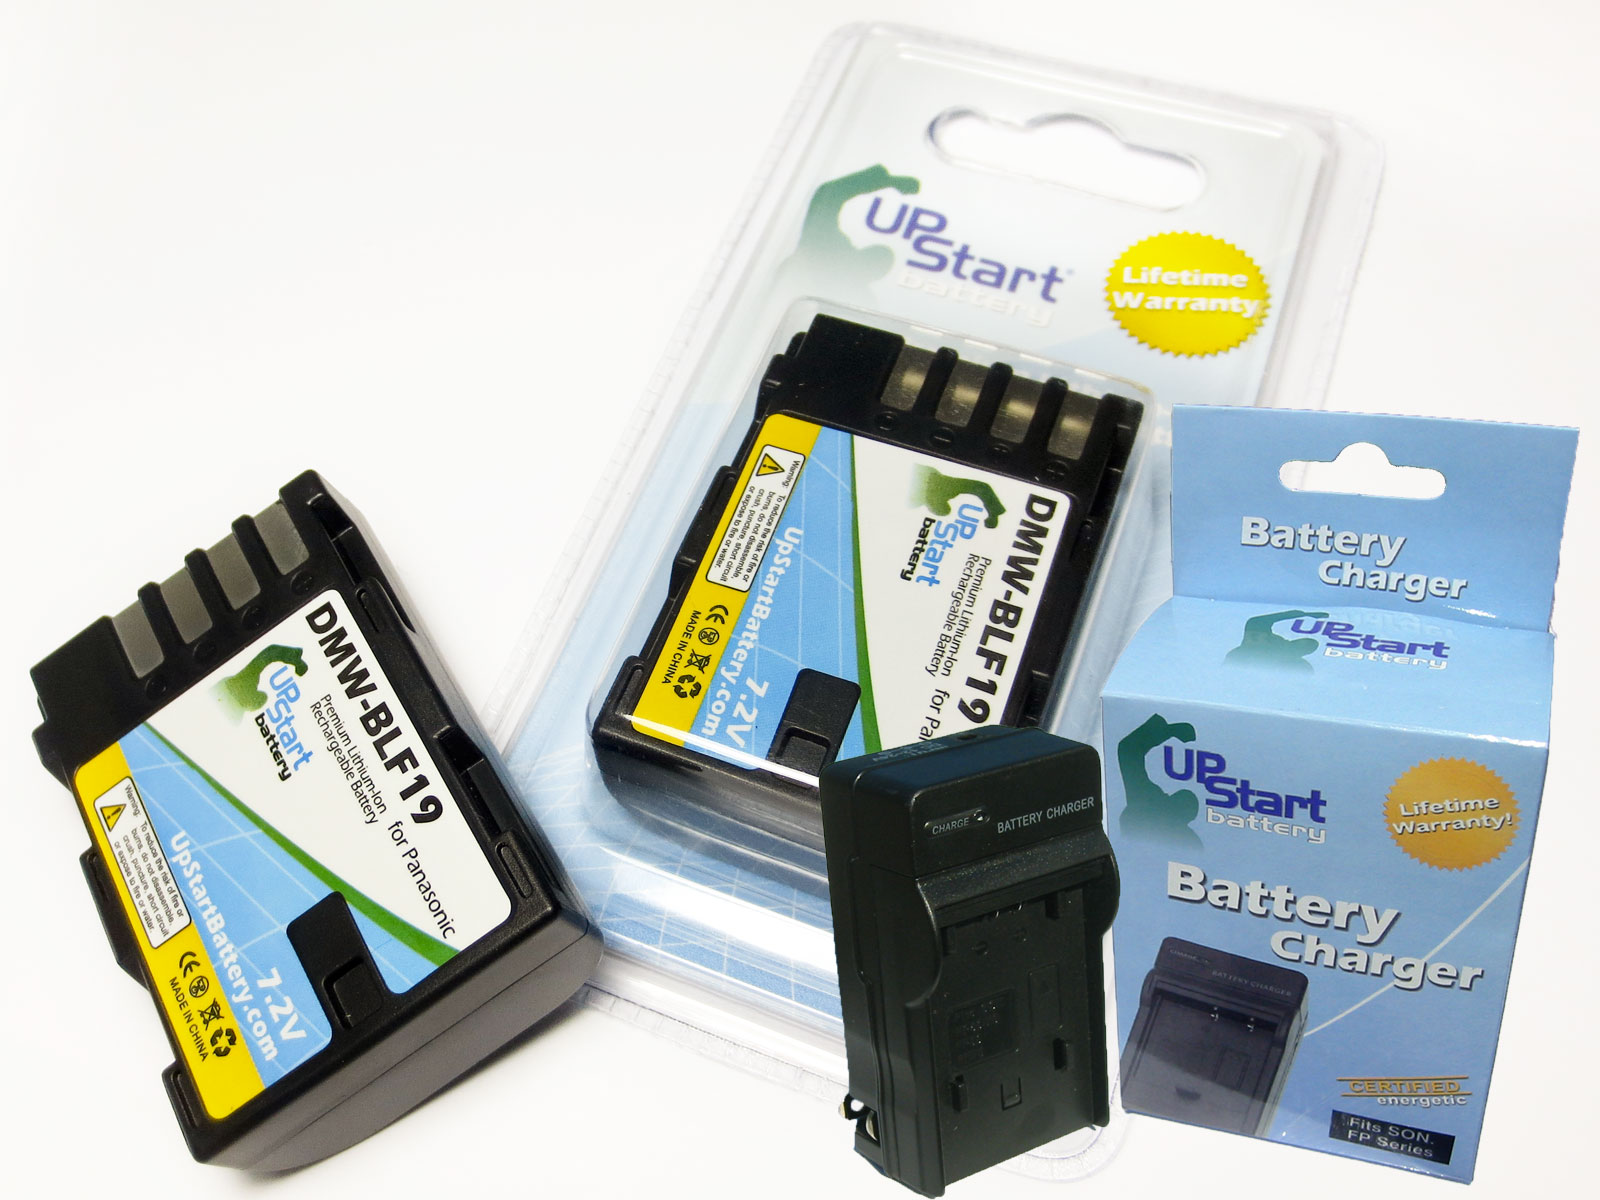 UpStart Battery 2x Pack - Panasonic Lumix DMC-GH3GK Digital Camera Battery + Charger - Replacement Kit for Panasonic DMW-BLF19 at Sears.com